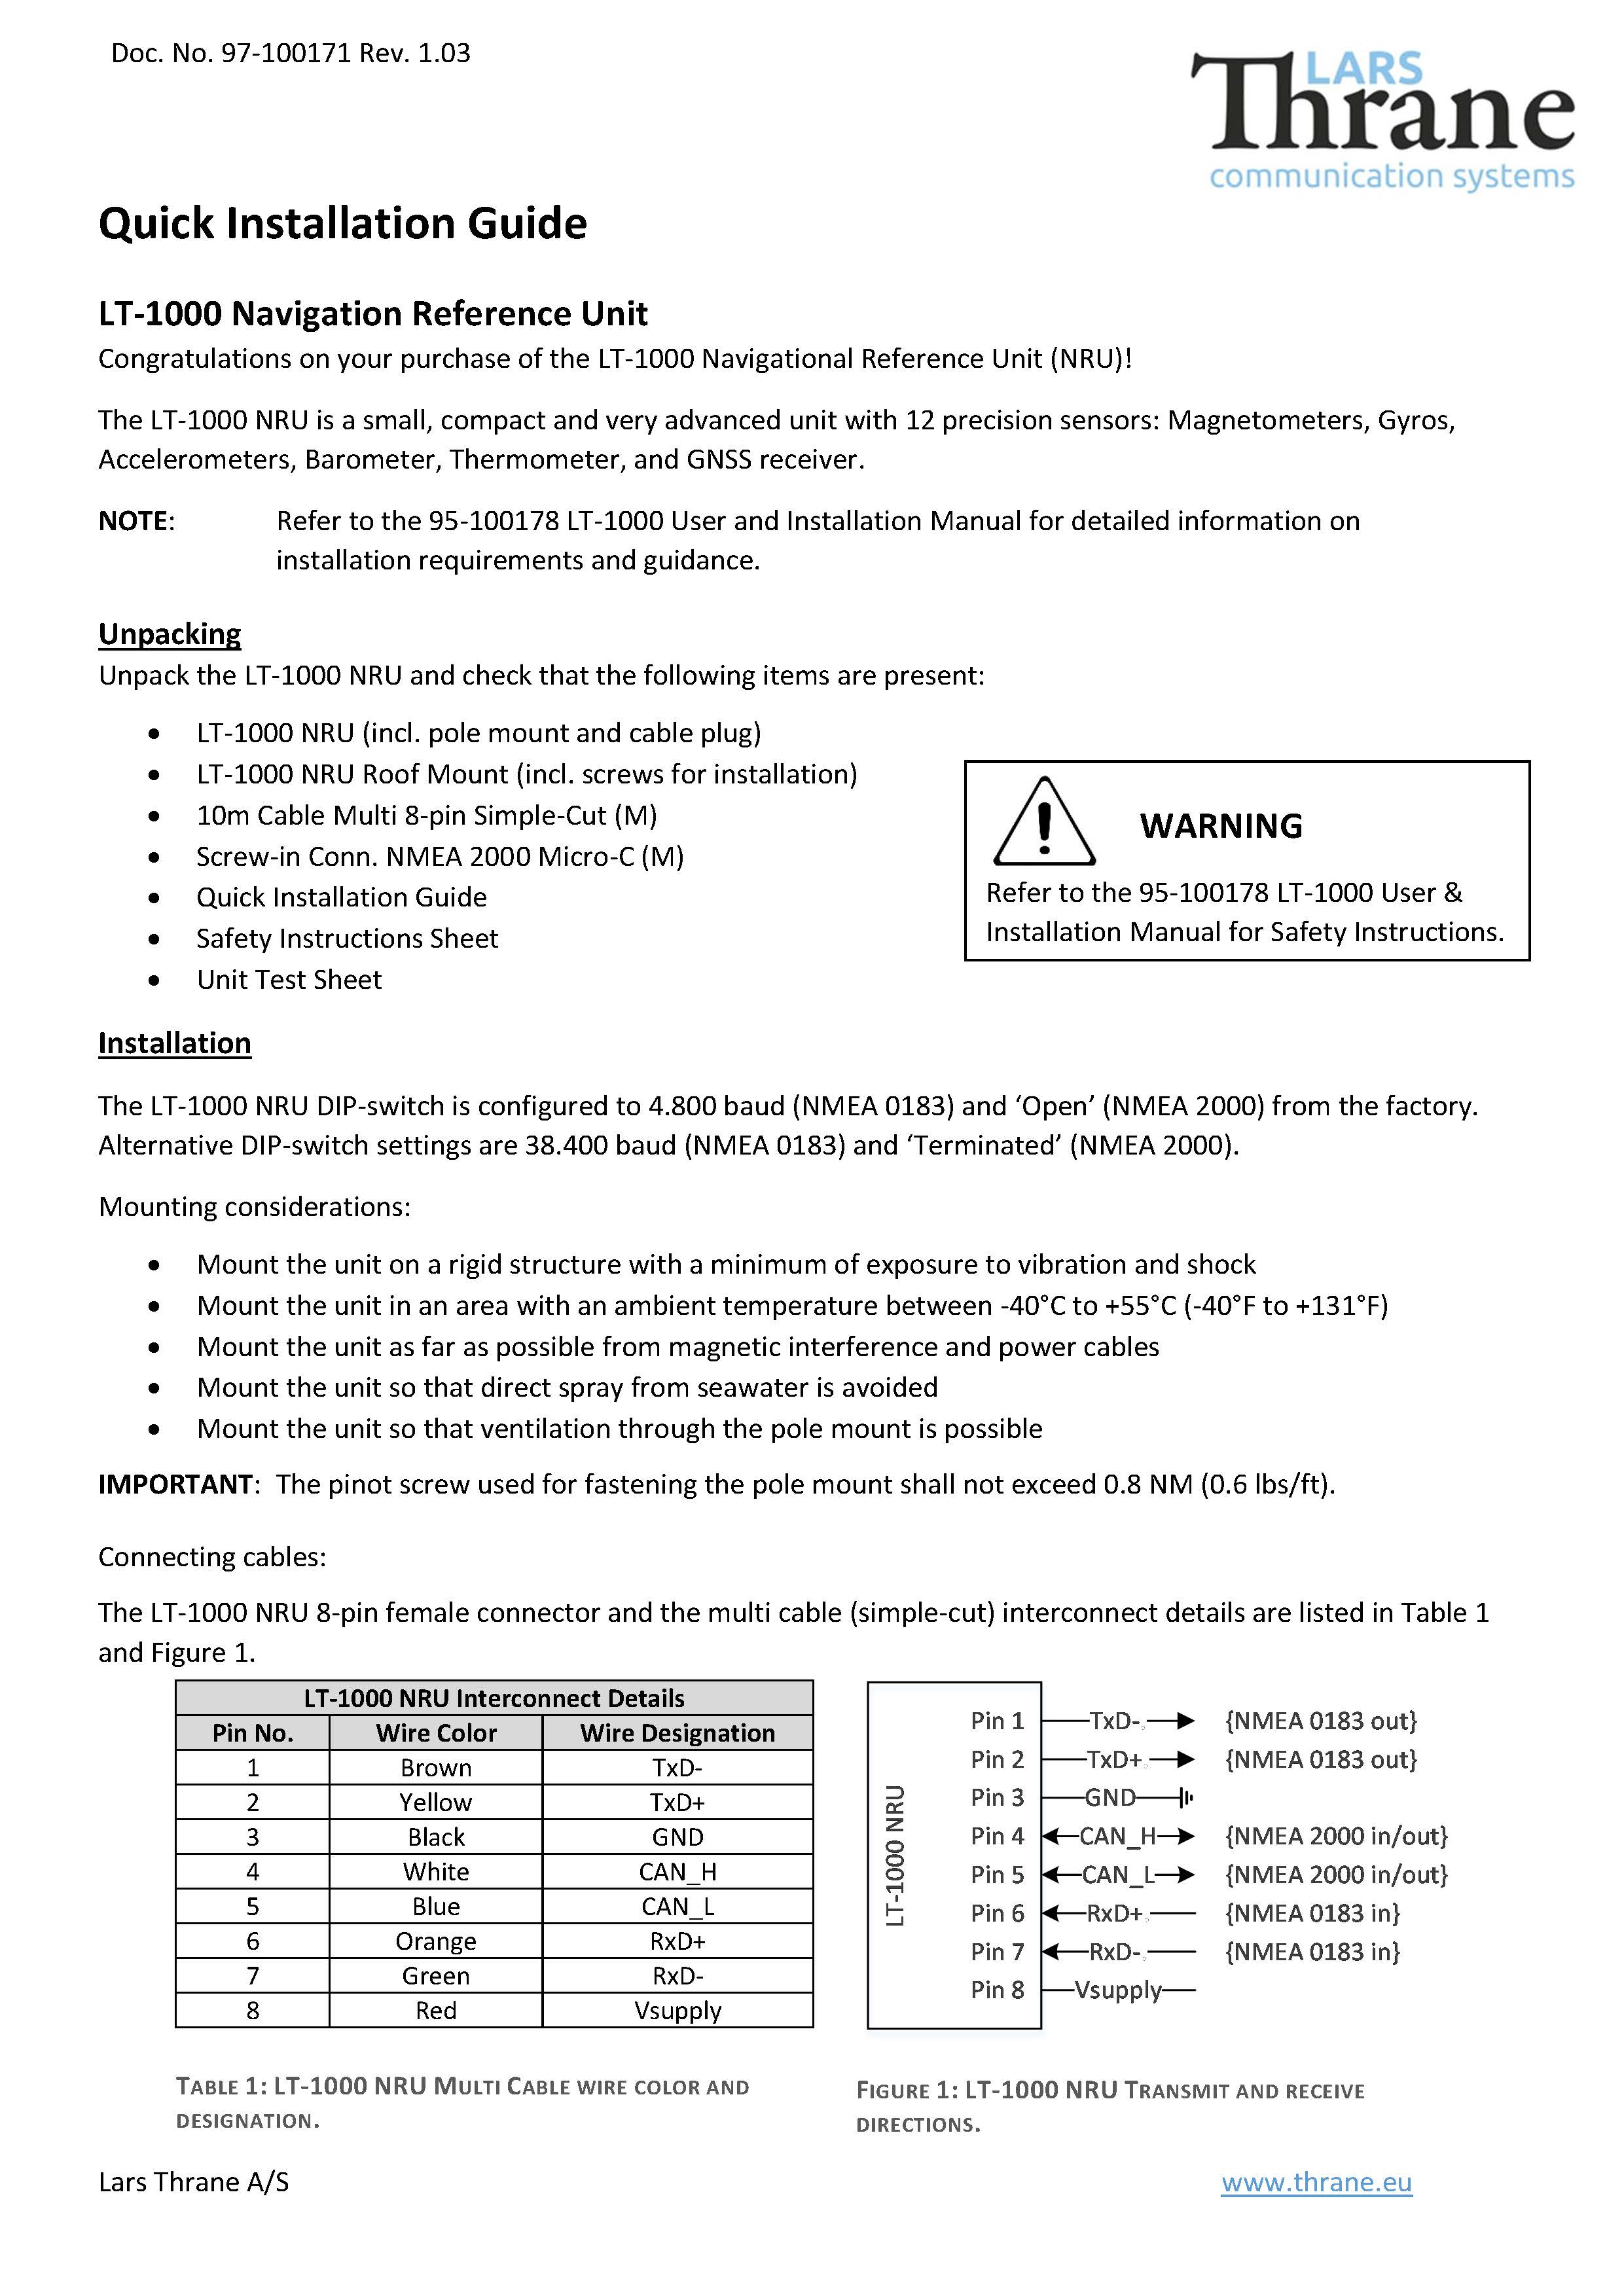 lt 1000 quick installation guide rev 1.03 Page 1